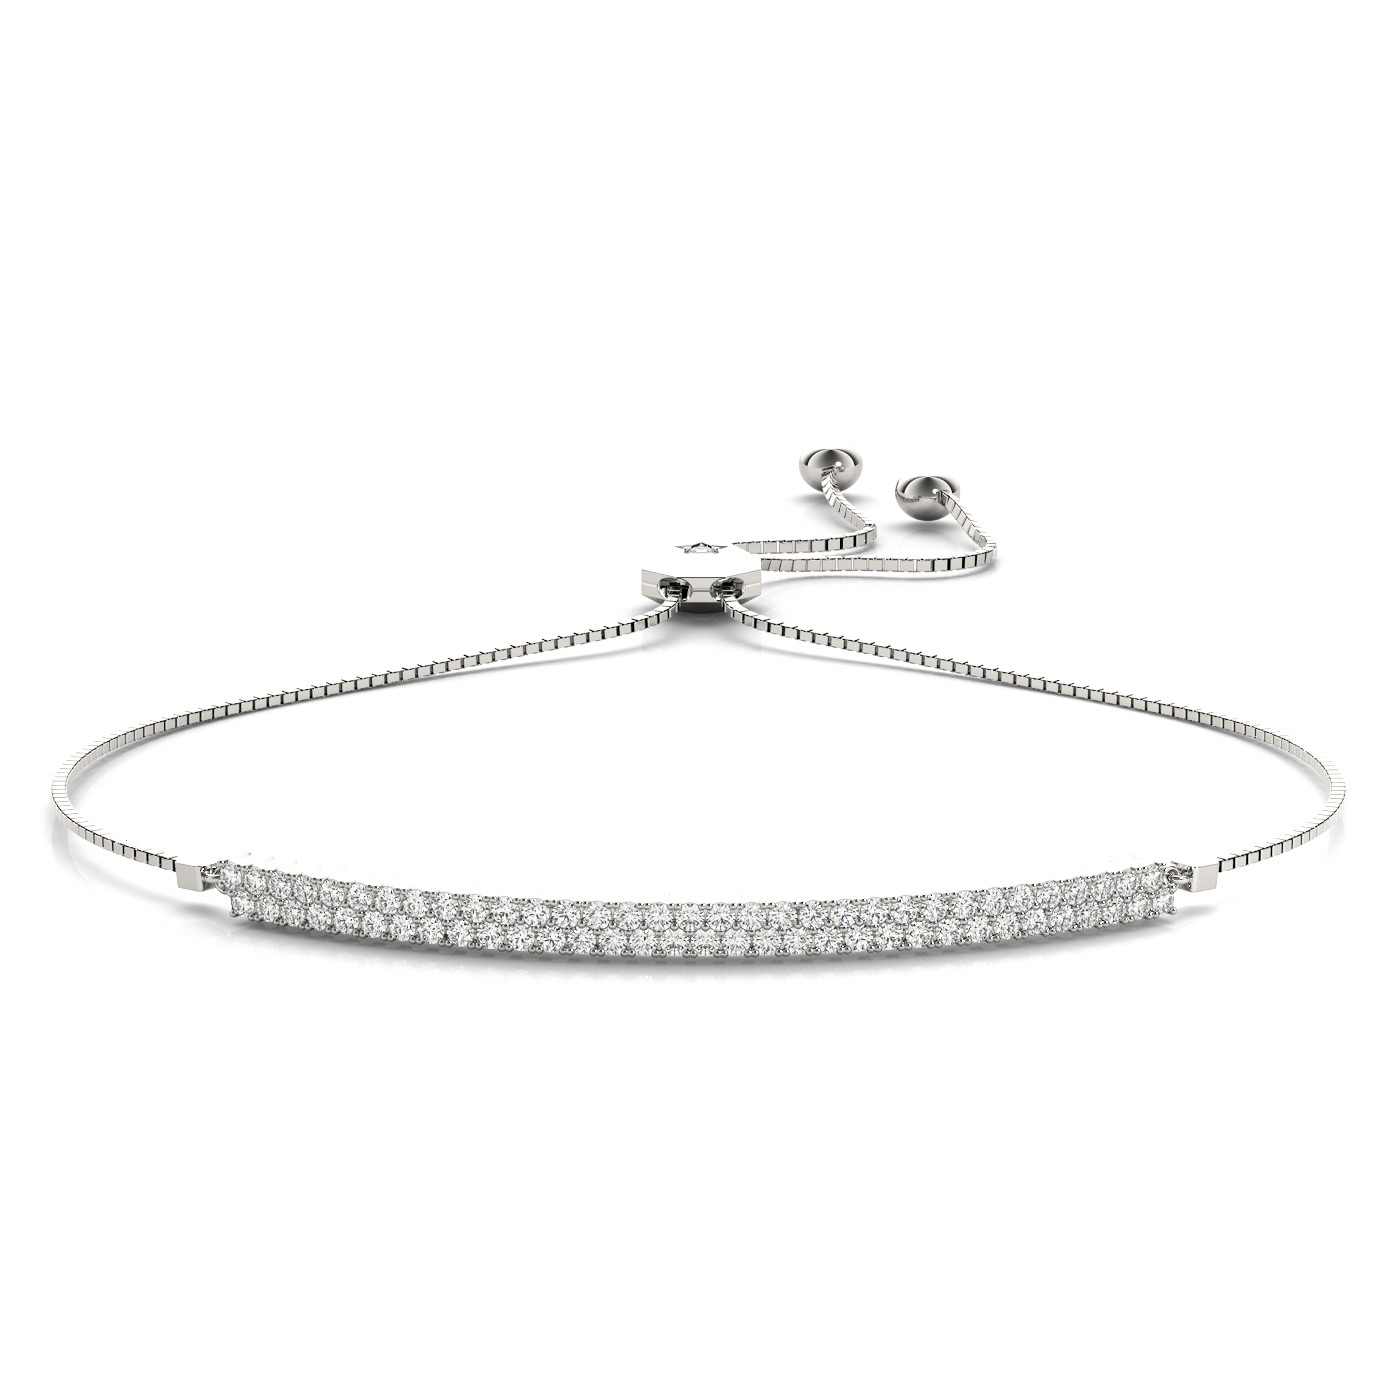 2 ROW ADJUSTABLE BRACELET